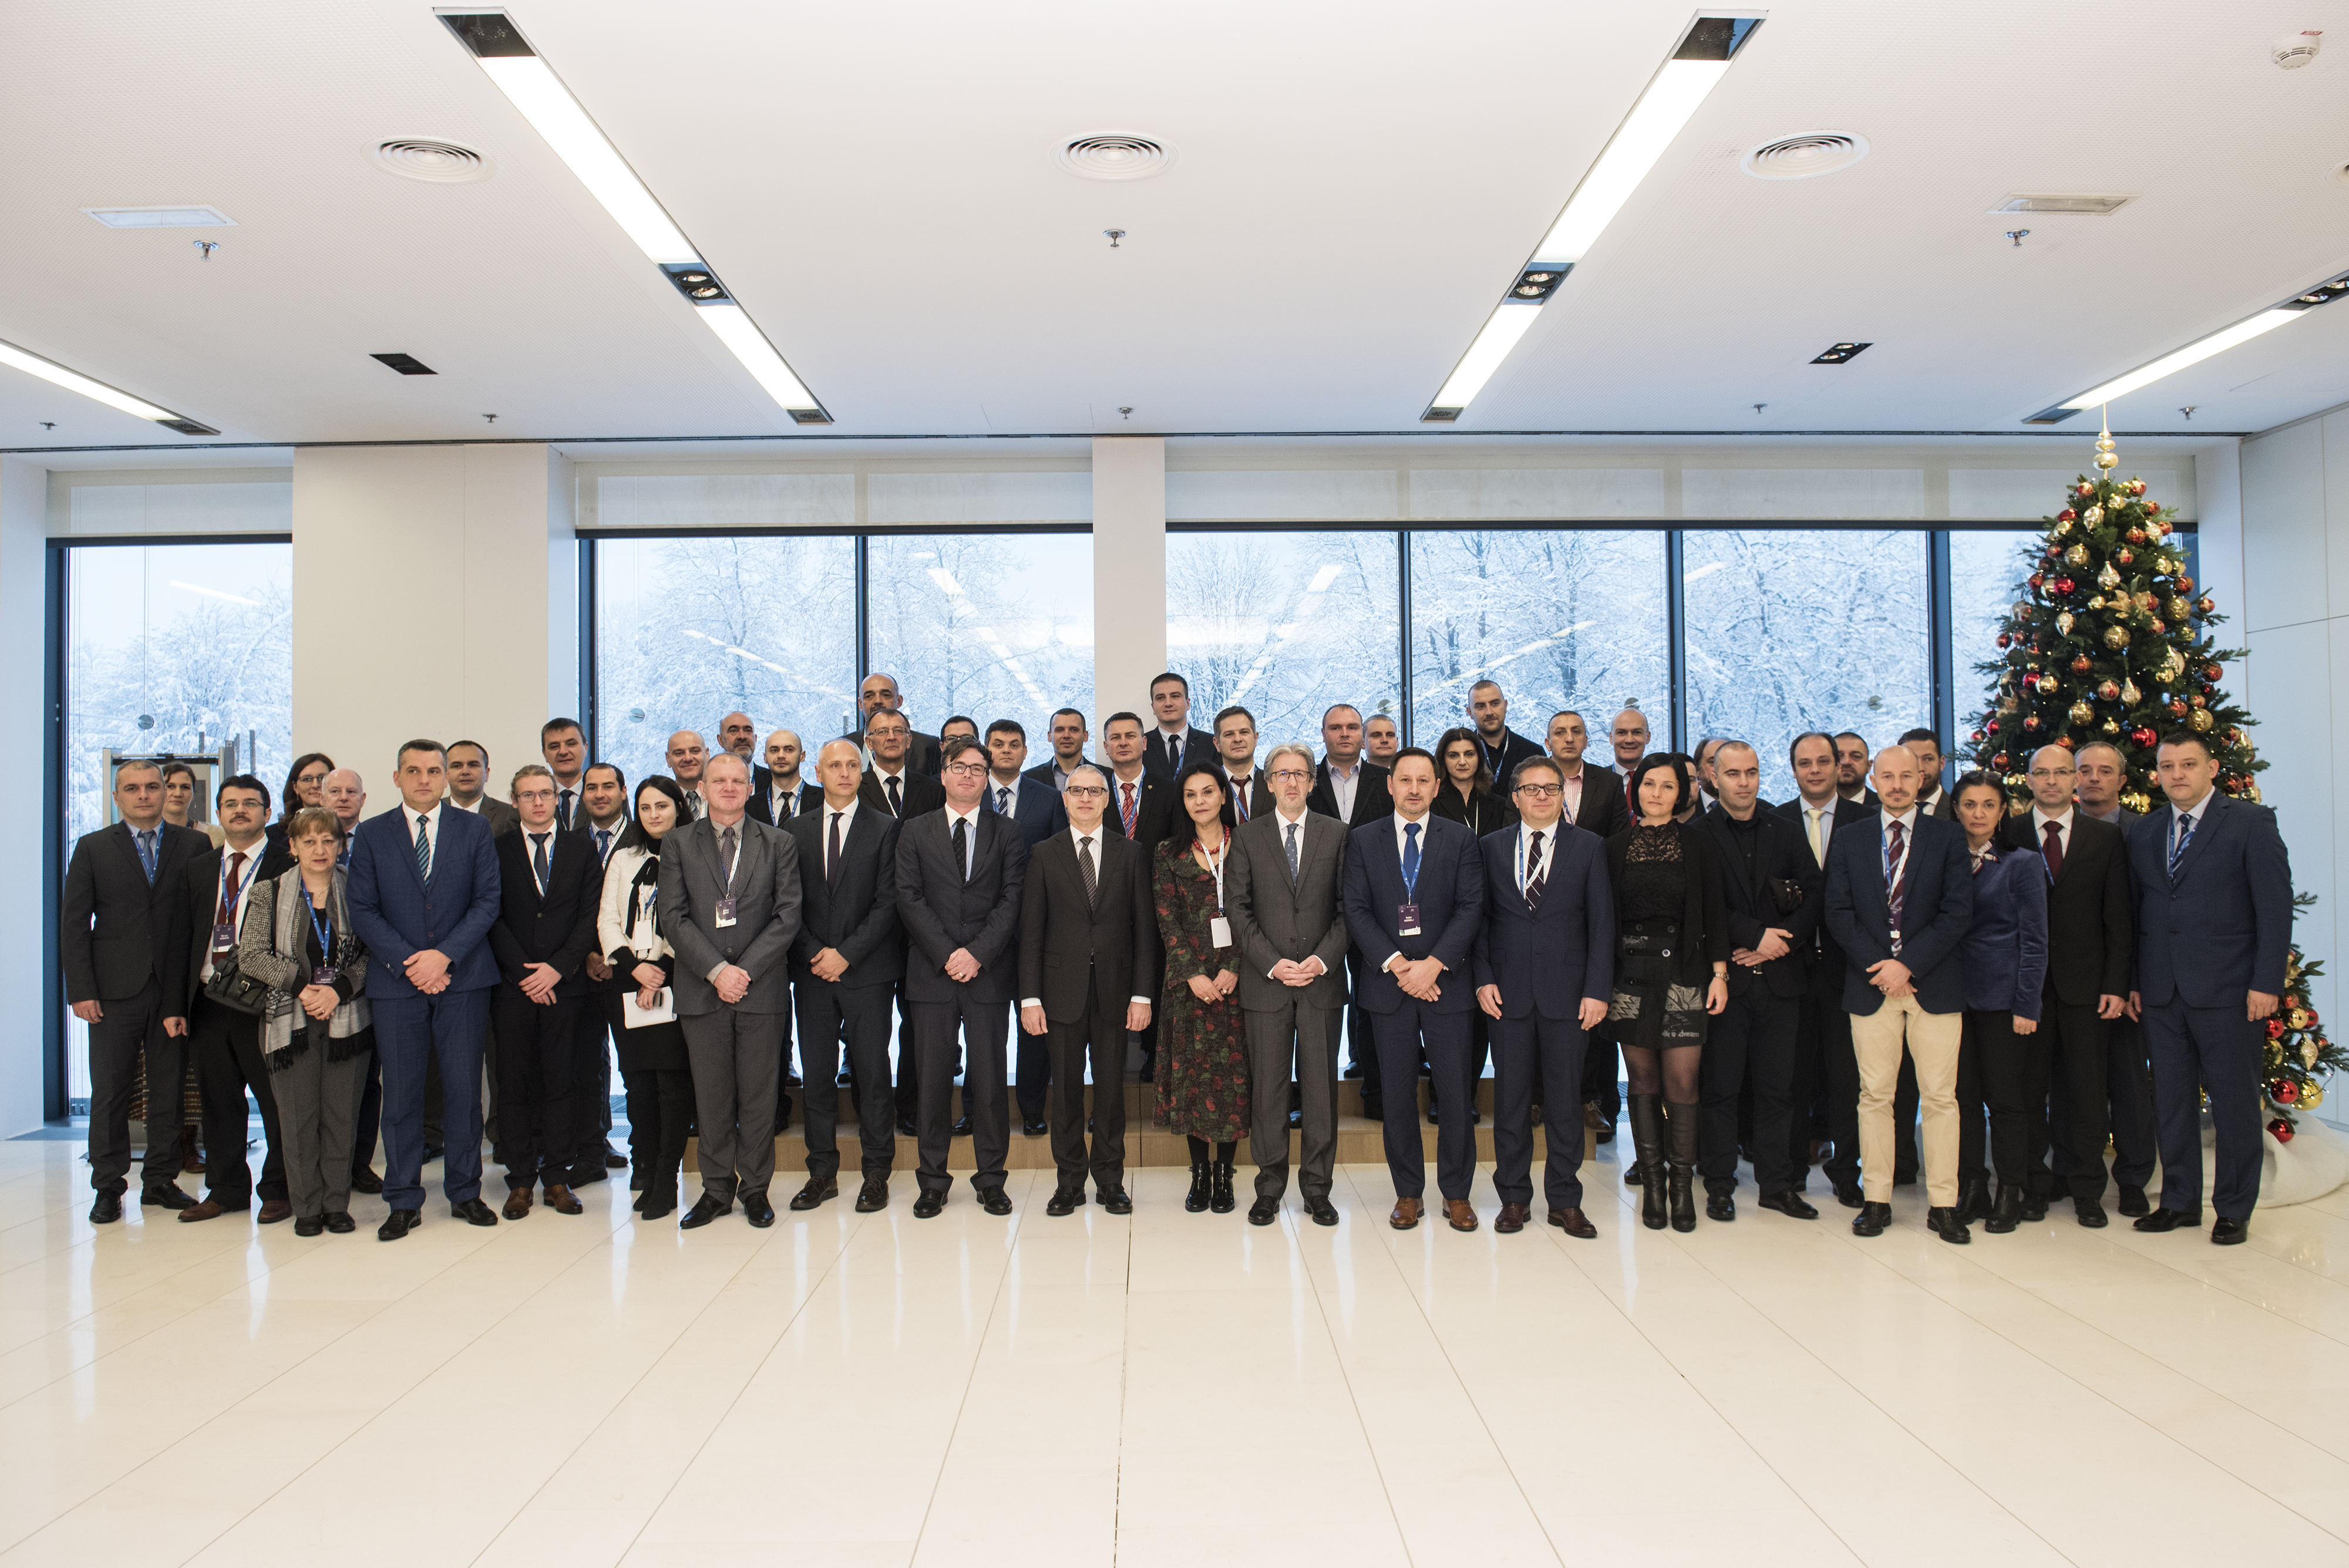 Participants of the Second Regional Coordination Conference for Counter-Terrorism and Prevention and Countering Violent Extremism in South East Europe  in Brdo pri Kranju, Slovenia, on 30 November 2017 (Photo: RCC/ Bor Slana)